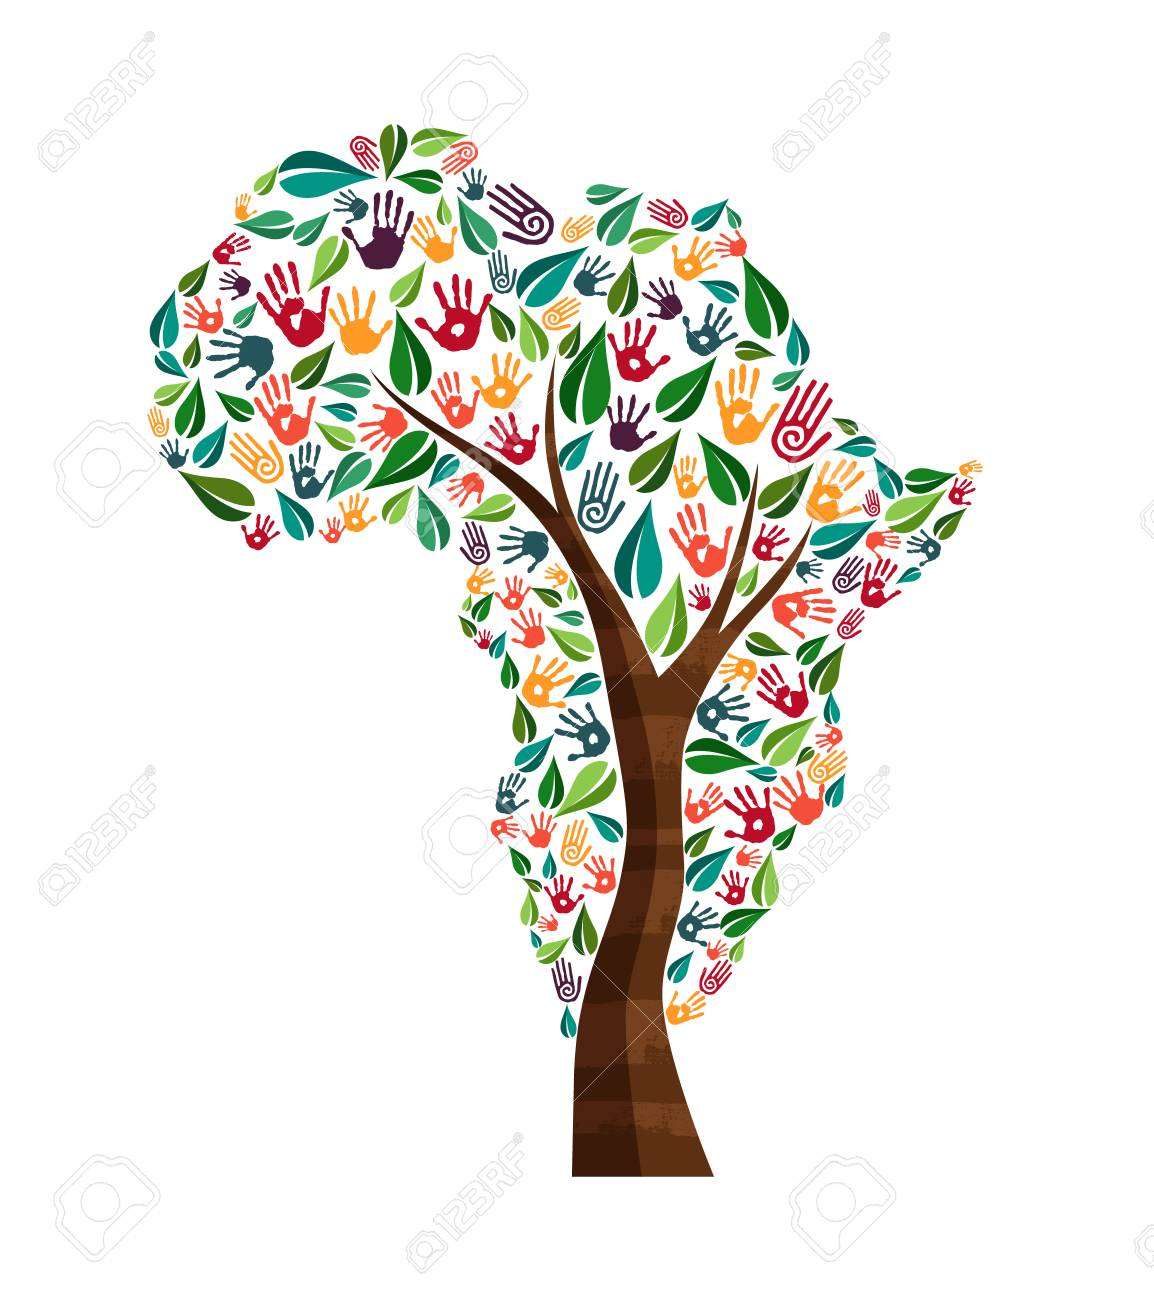 Tree with african continent shape and human hand prints. Africa world help concept illustration for charity work, nature care or social project. EPS10 vector. - 83585144